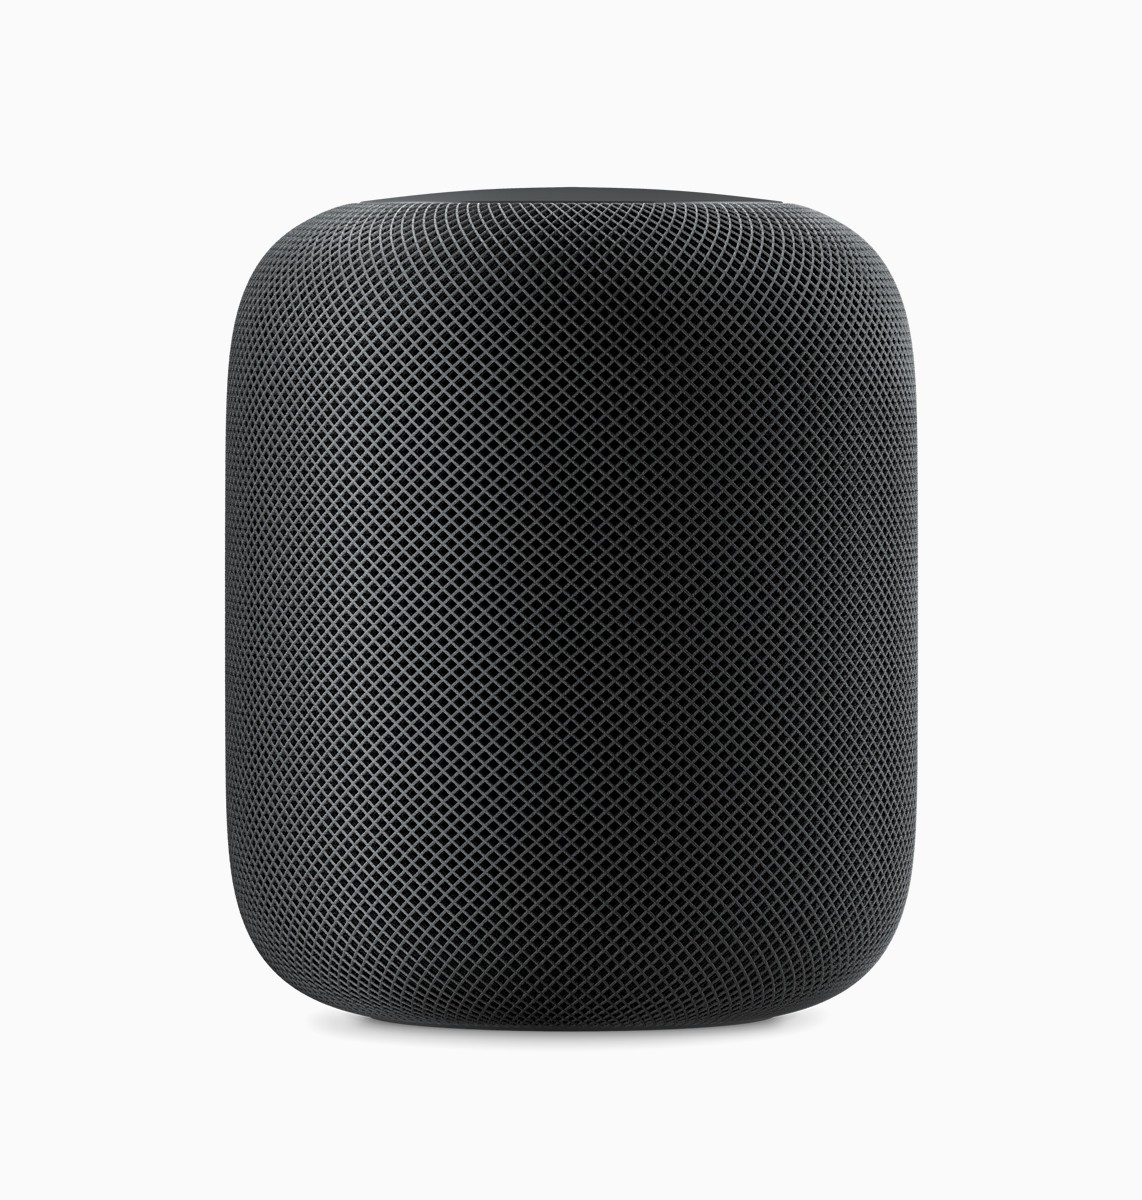 How to buy your HomePod in the U.S.